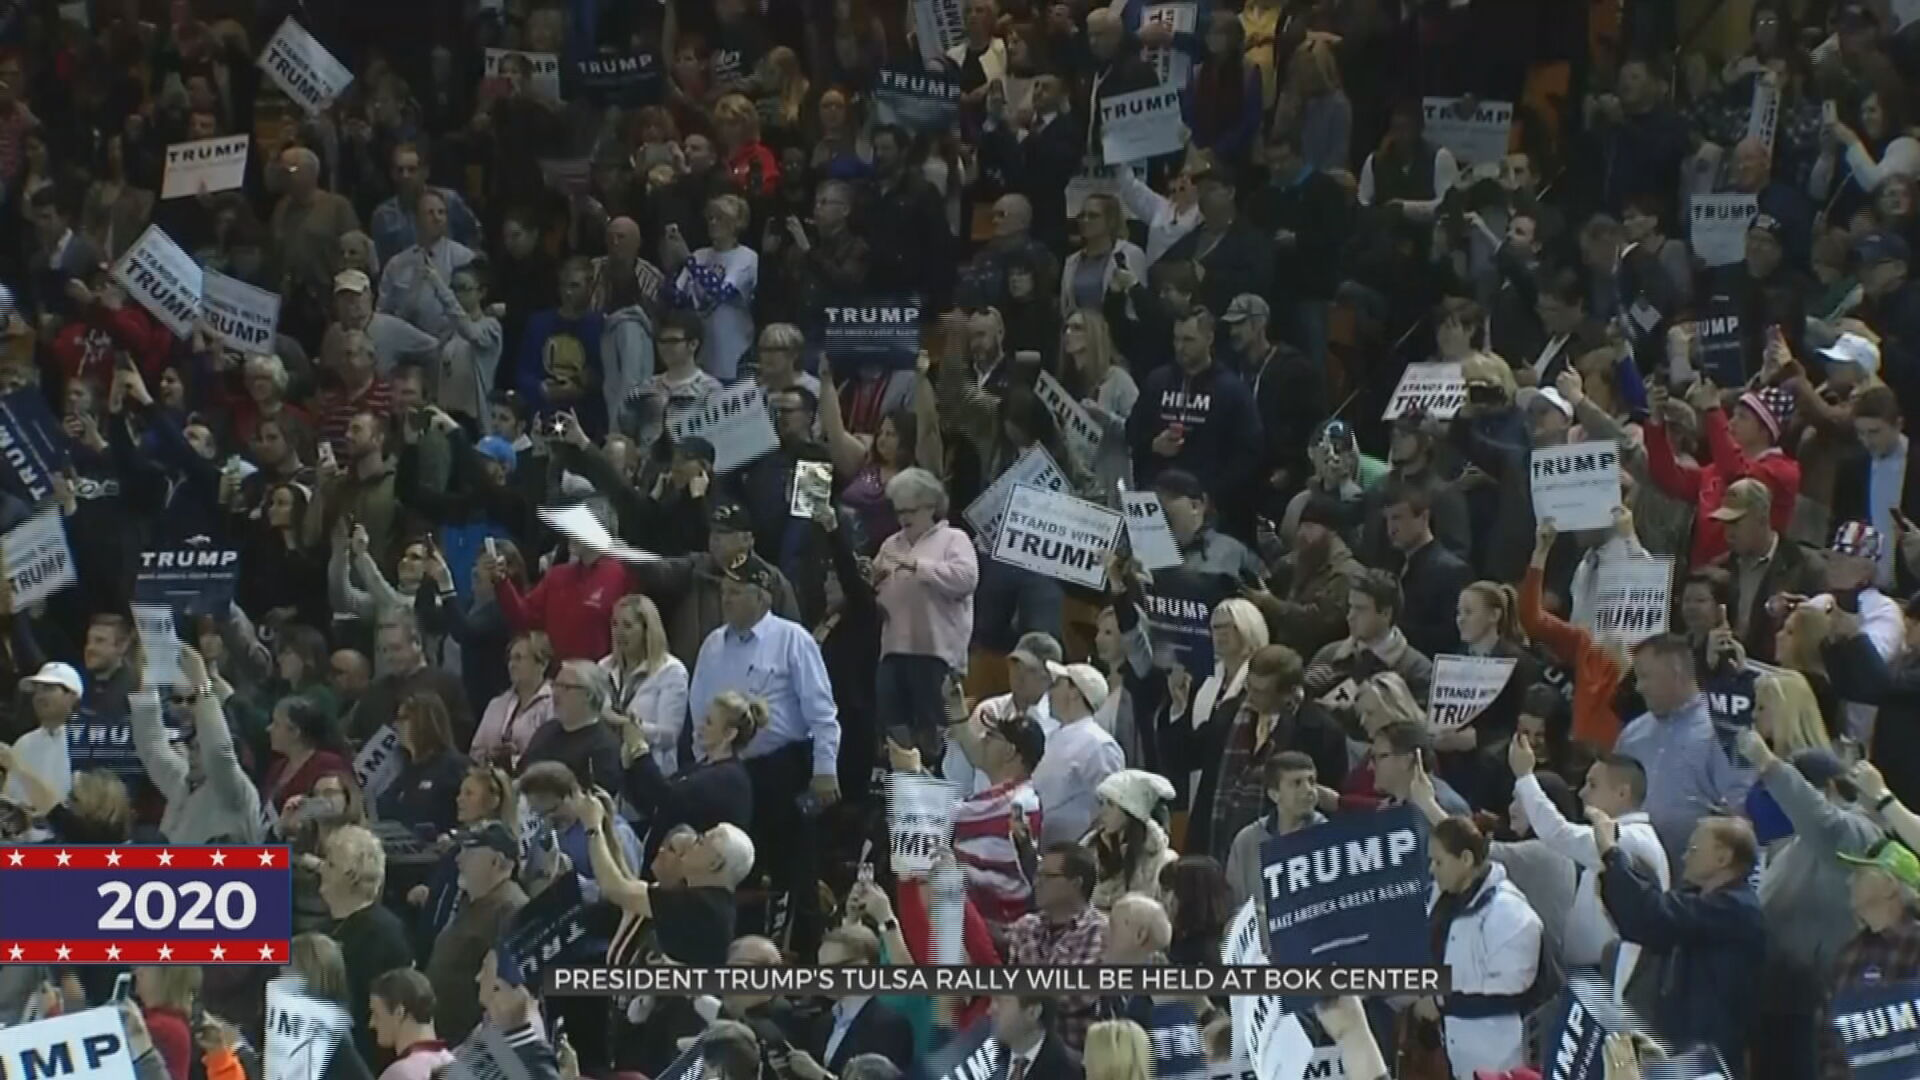 President Trump's Rally To Be Held At Tulsa's BOK Center